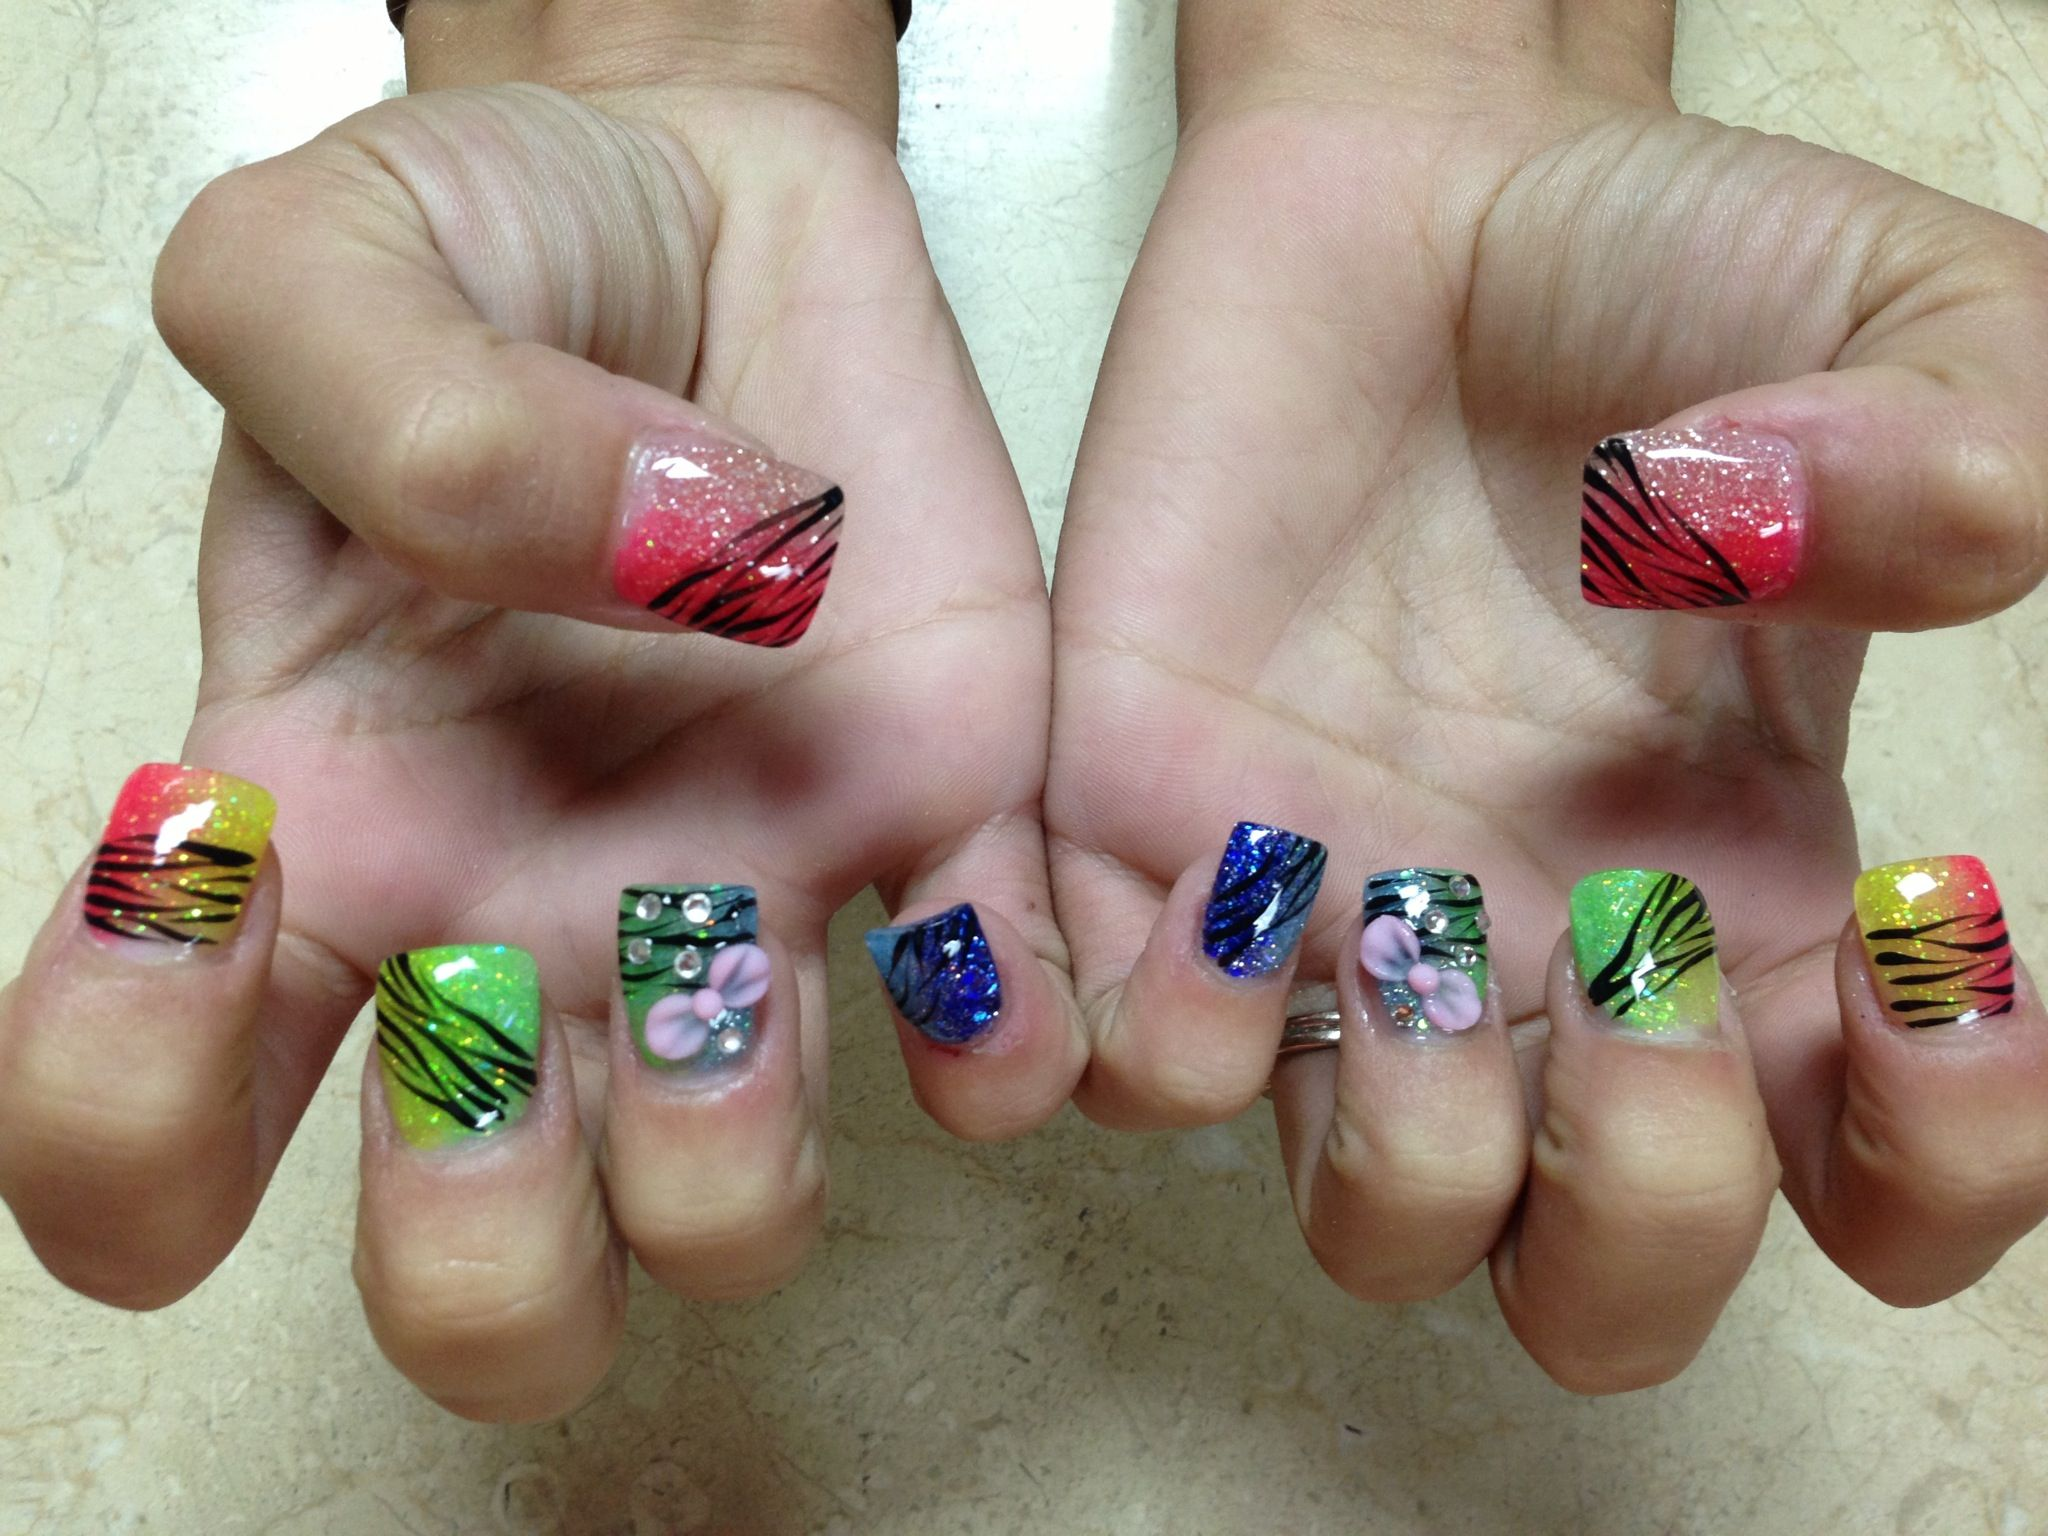 Impress press on manicure nails my style pinterest - Nails Done At New York Style Nails In Springdale Ar